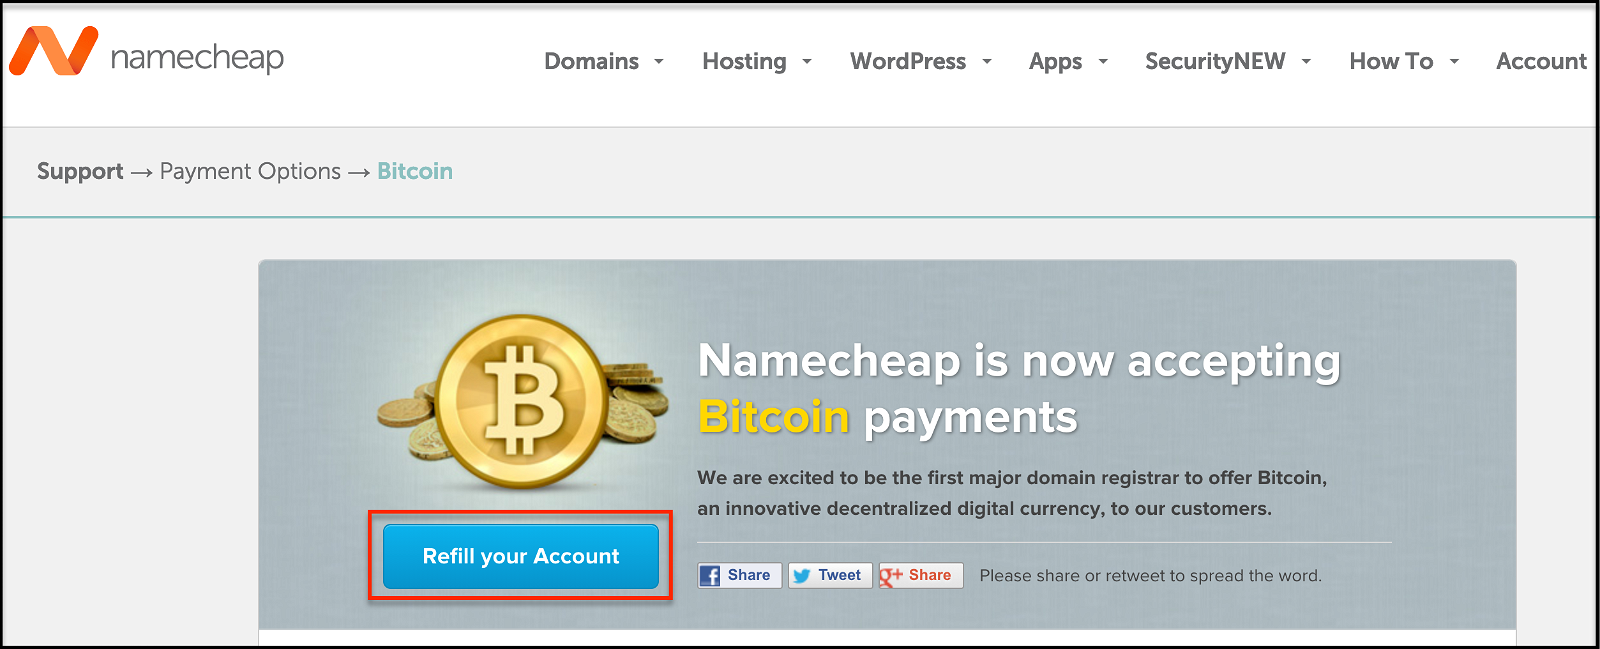 top web hosting services that accept bitcoin and cryptocurrencies. Thinkmaverick